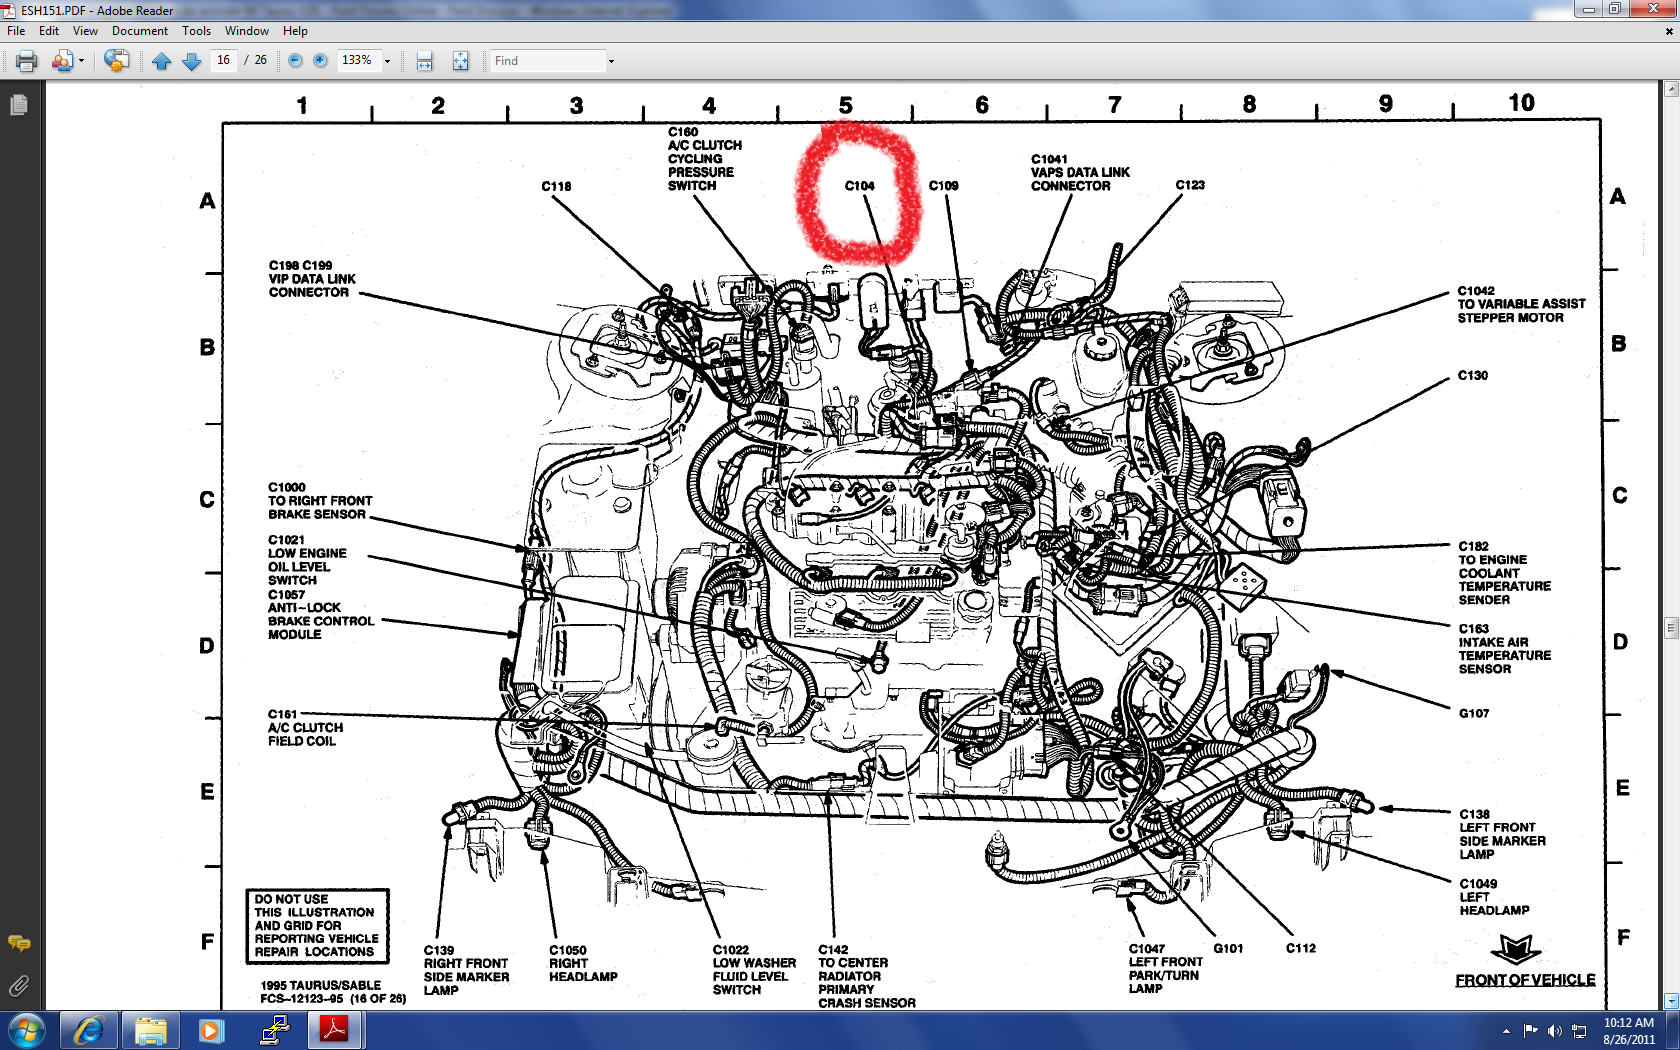 radiator cooling fan fails to auto activate 94 taurus 3 0l Sable Wiring-Diagram Fan at edmiracle.co